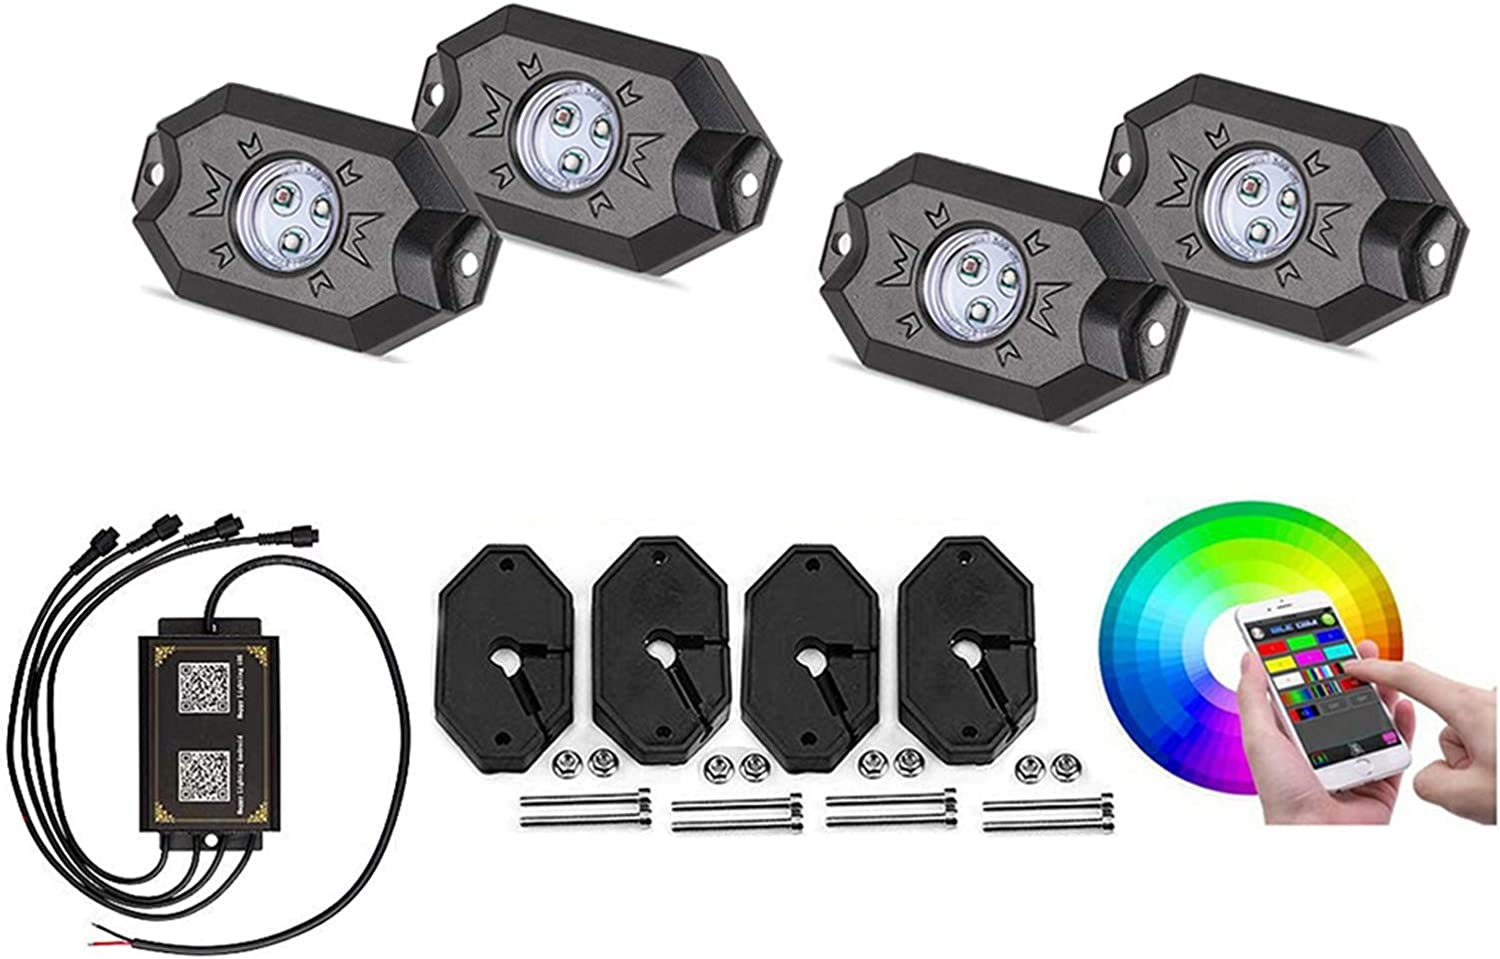 A surprise price is realized LUKUCEA Car Super beauty product restock quality top Underglow Lights System Neon Strip Underbody